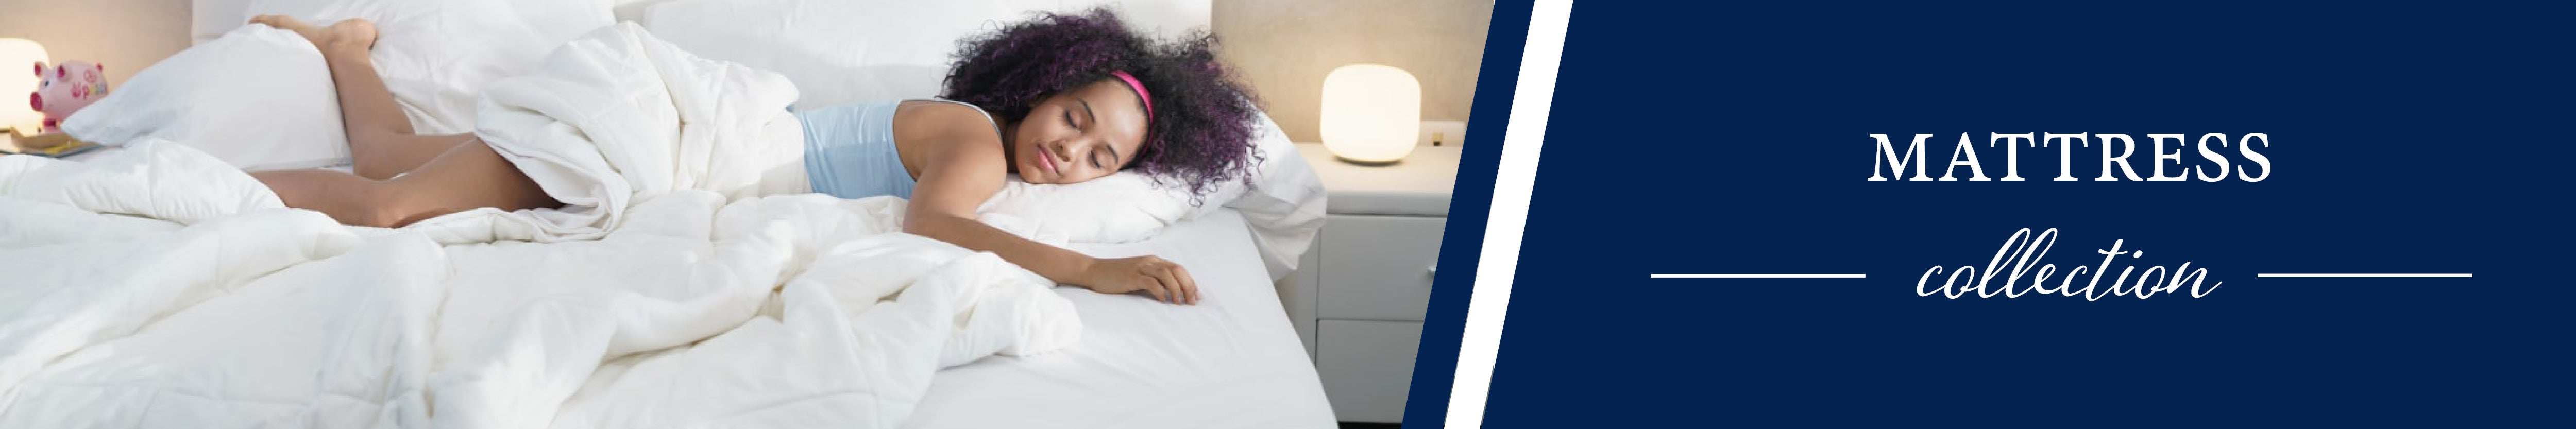 HomePlus Furniture | Mattresses Collection